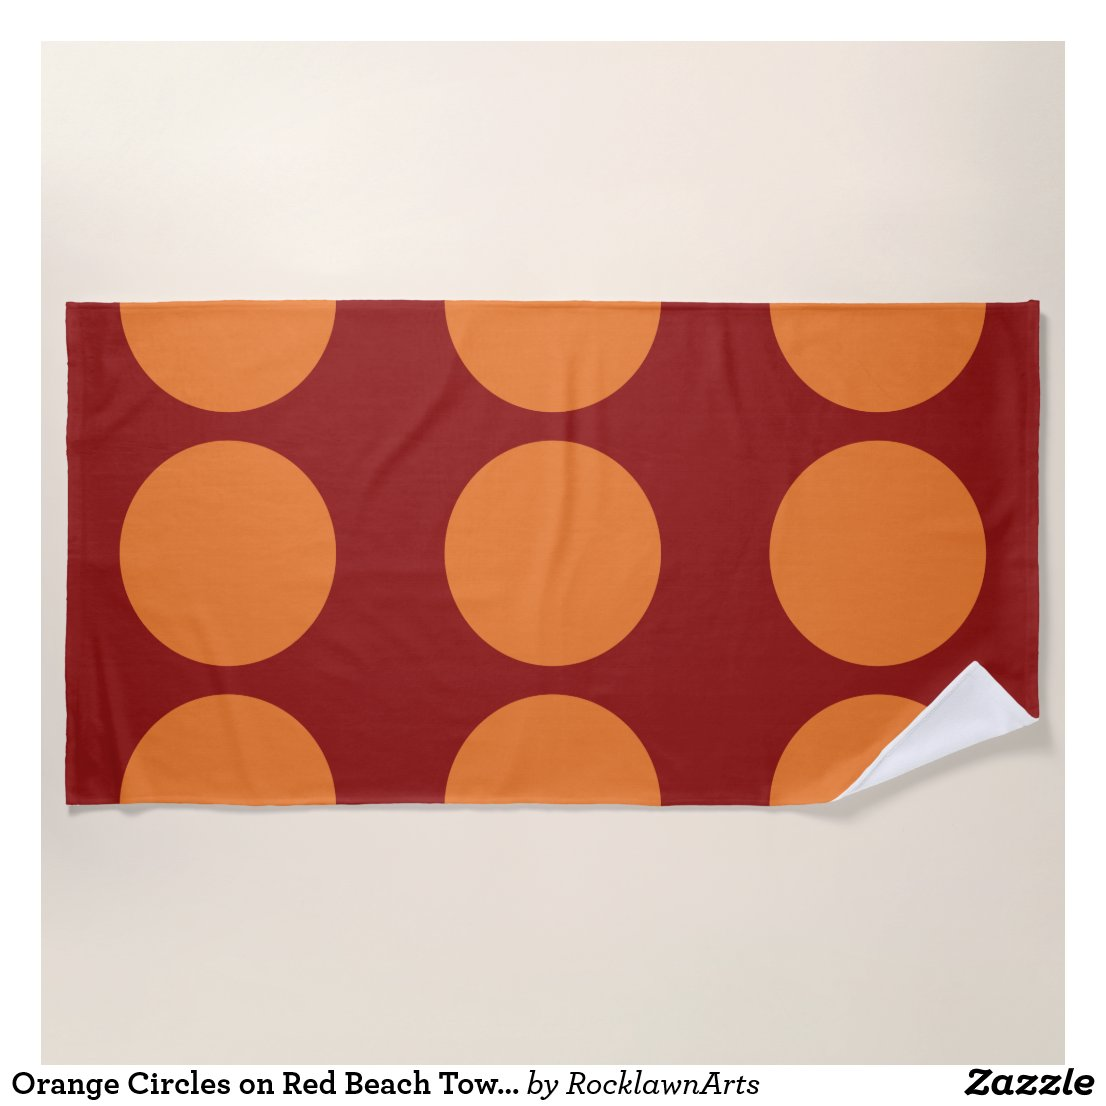 Orange Circles on Red Beach Towel